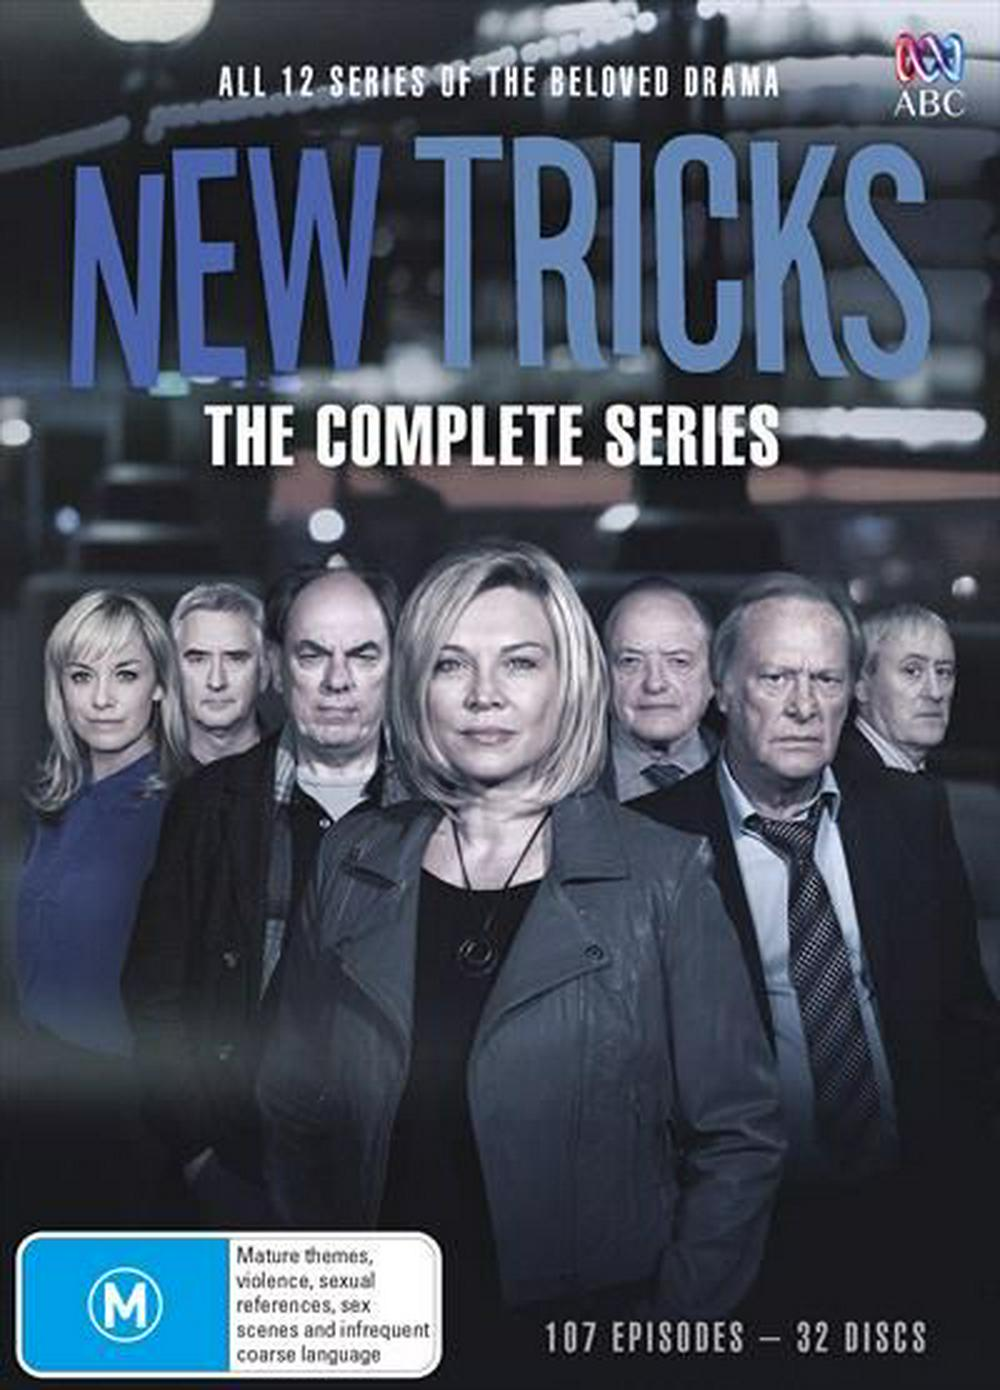 New Tricks Season 2 putlocker